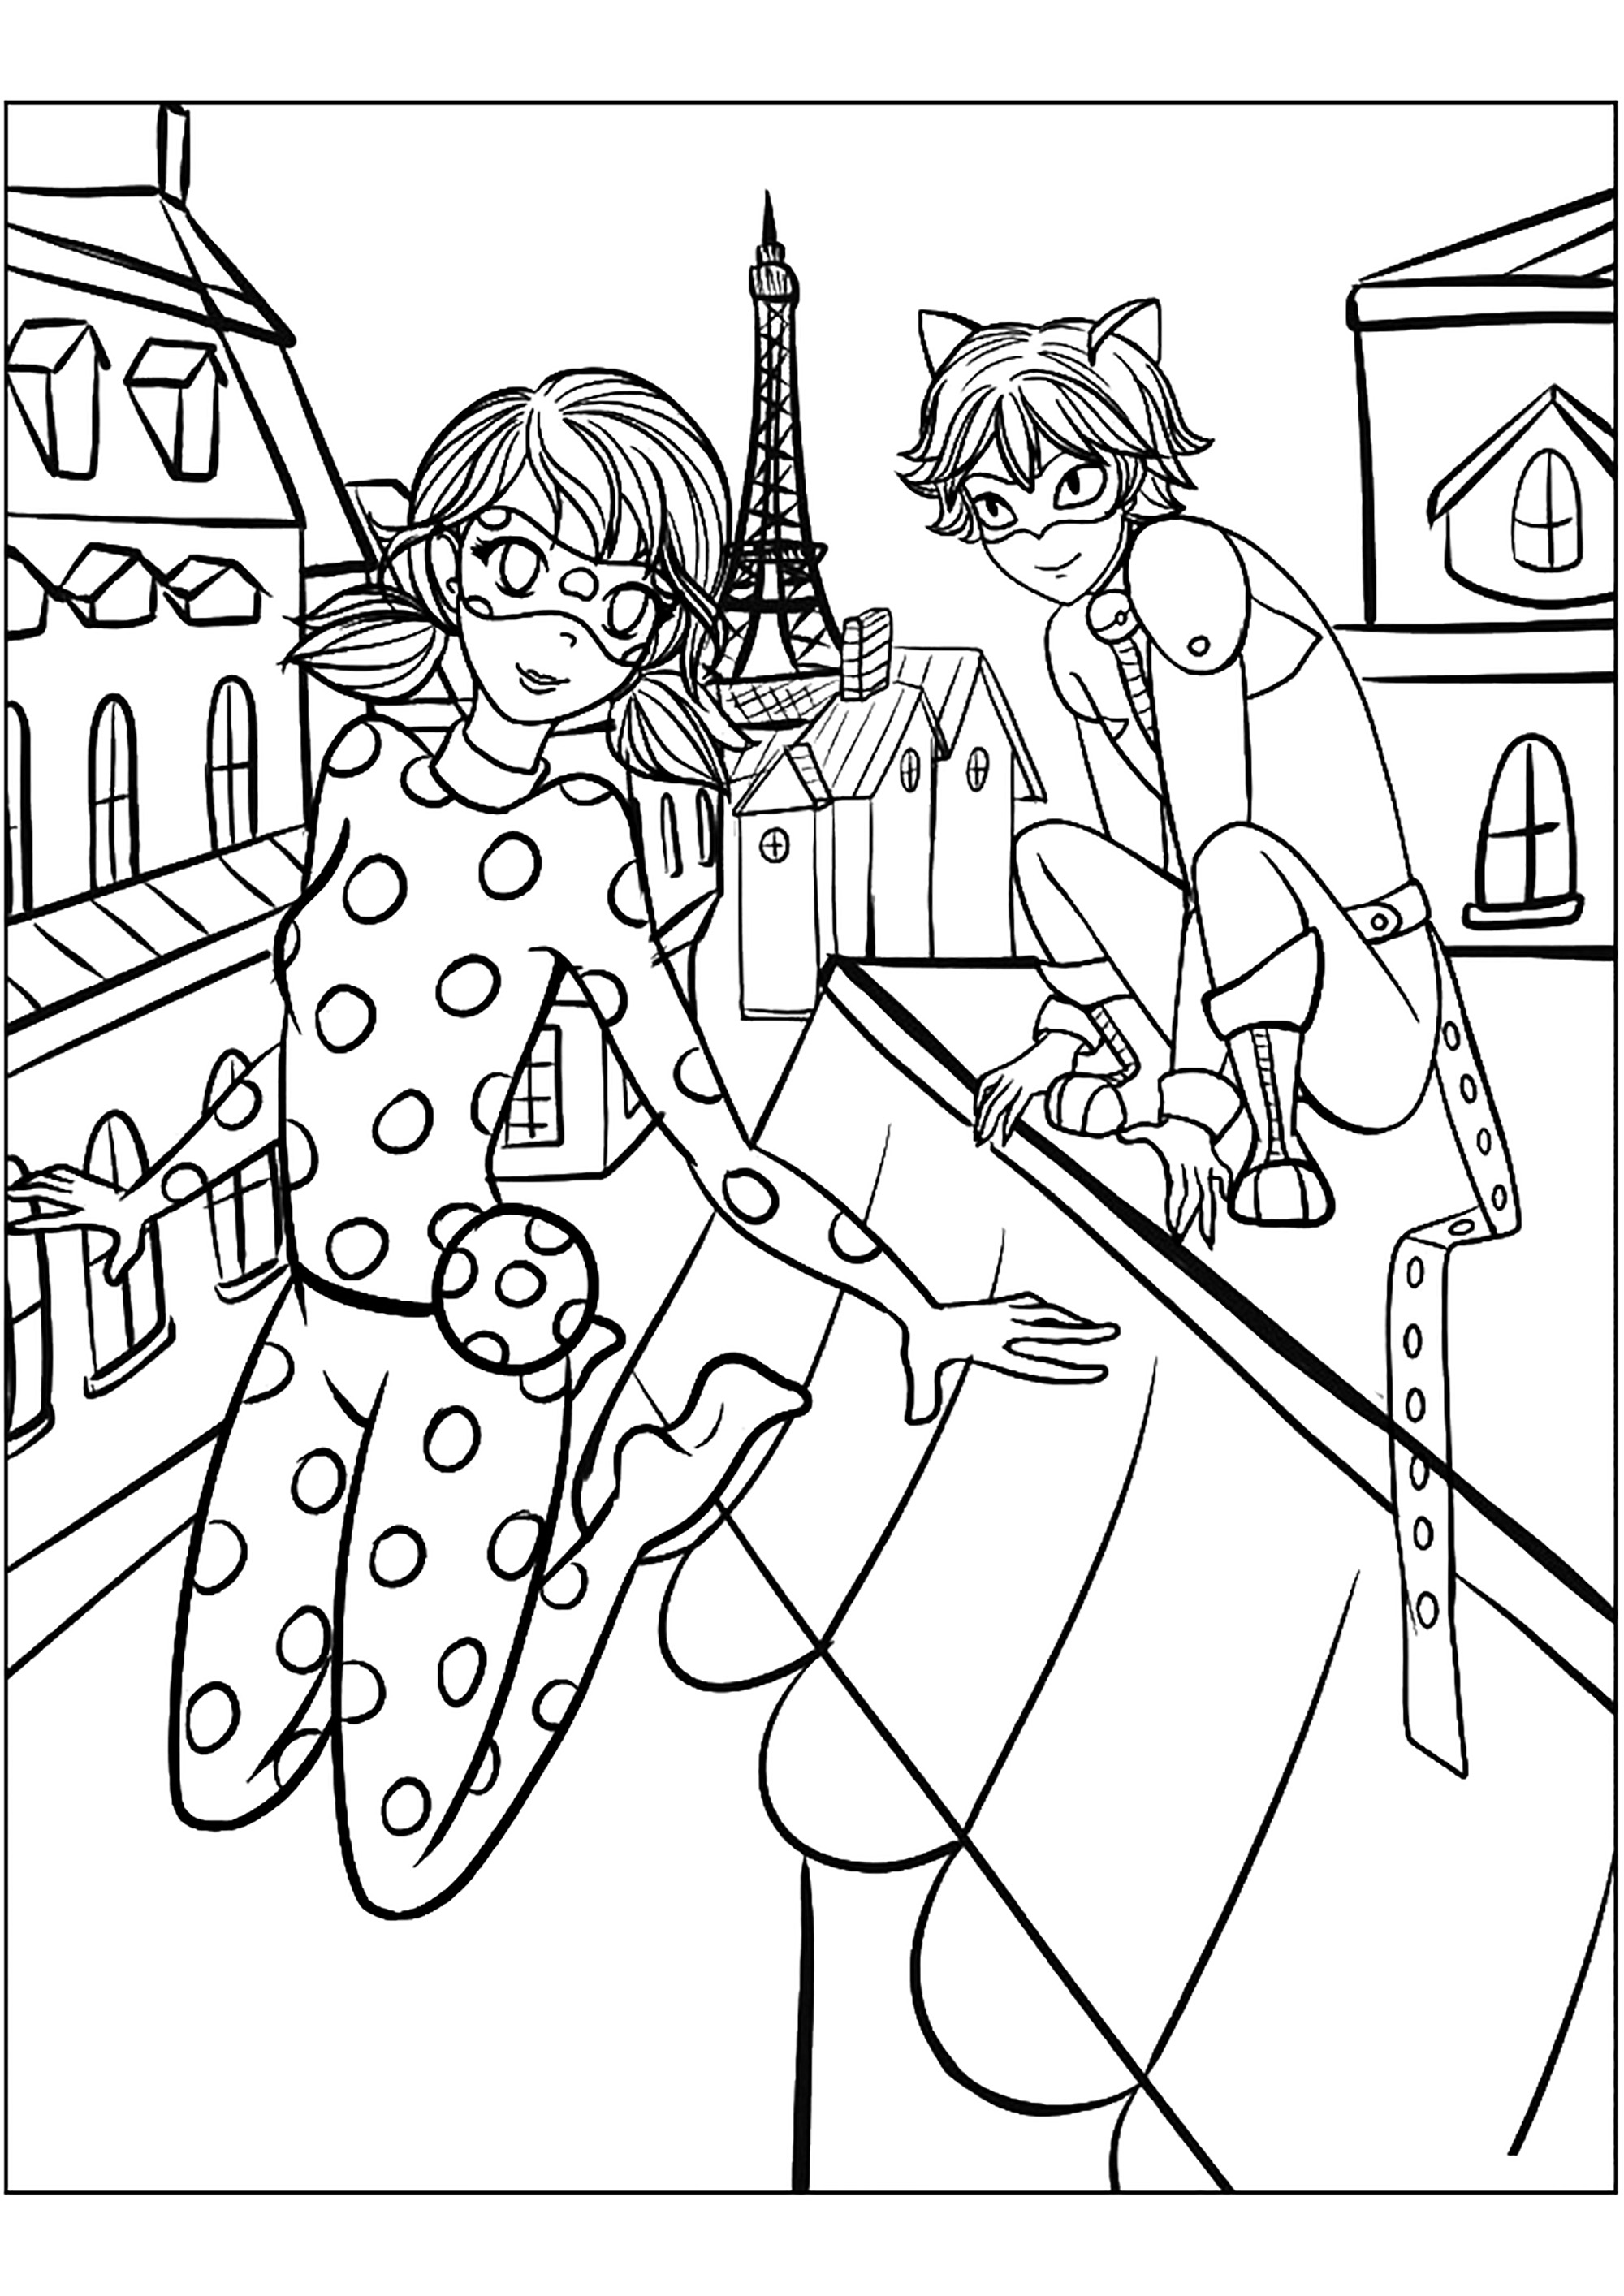 Funny Miraculous Lady Bug coloring page for children